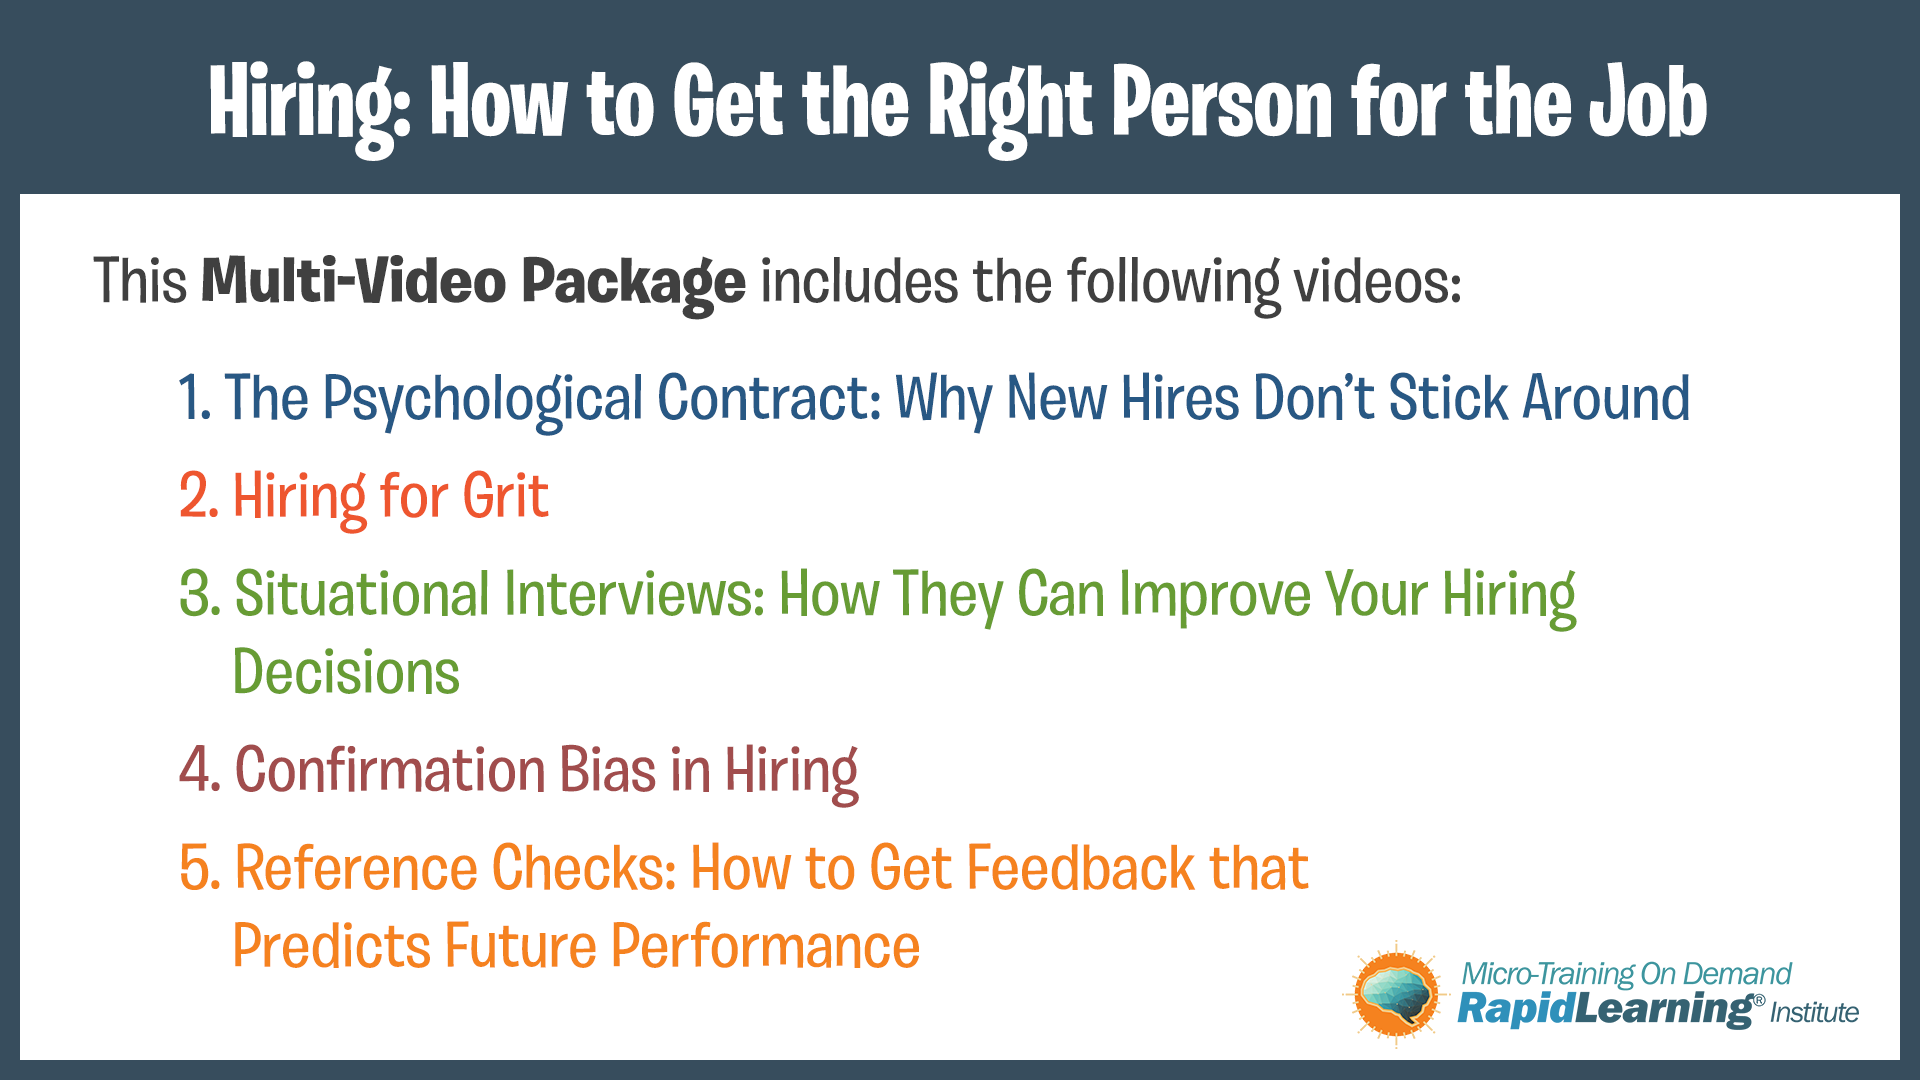 Hiring: How to Get the Right Person for the Job – Micro